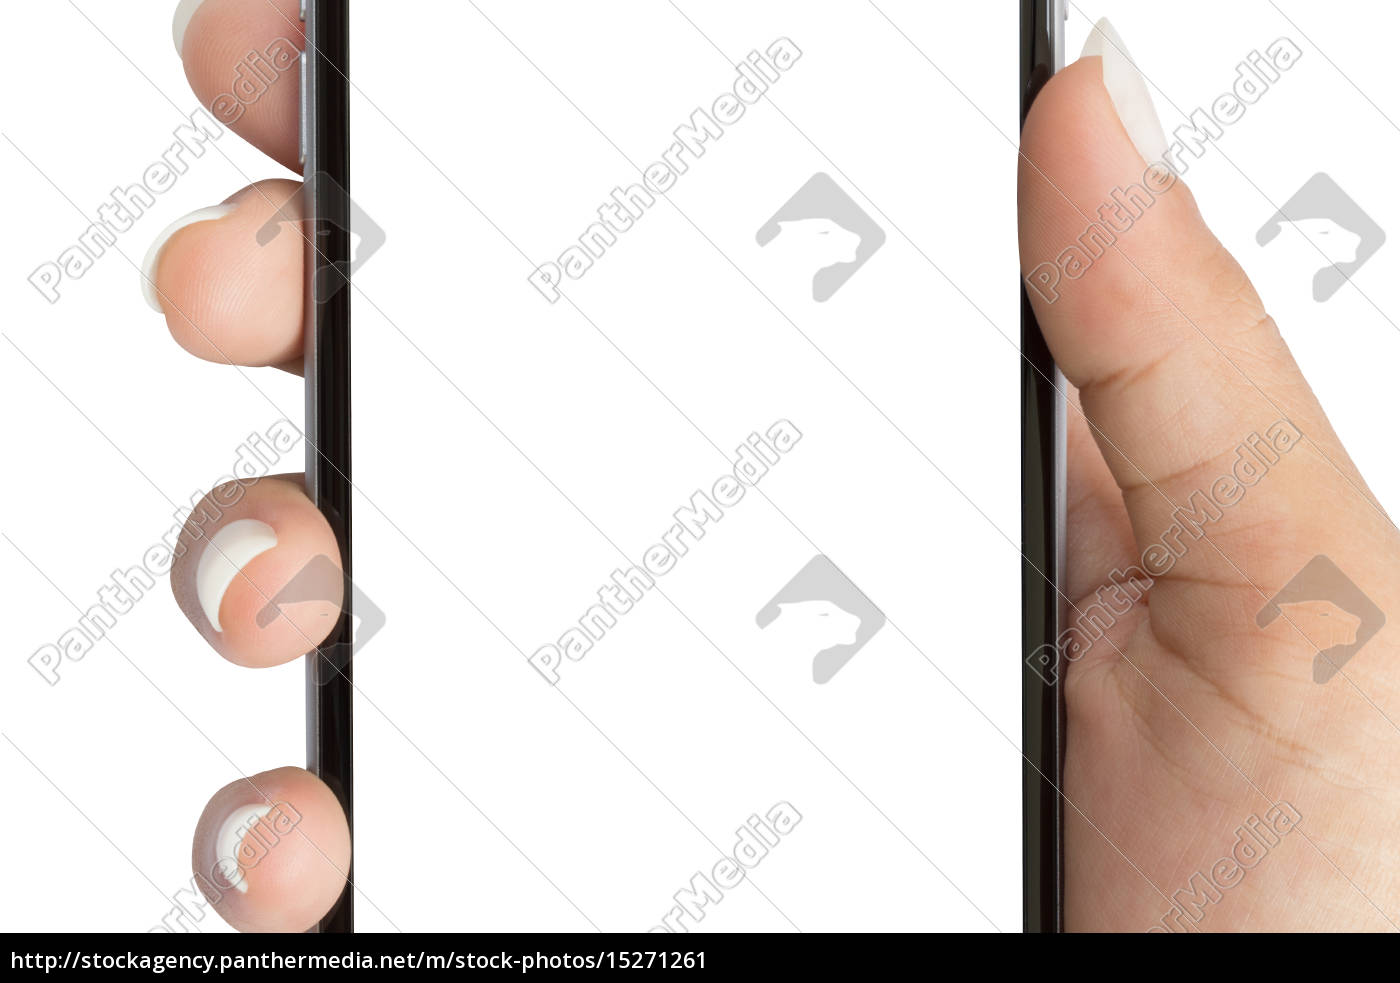 close, up, hand, holding, phone, white - 15271261